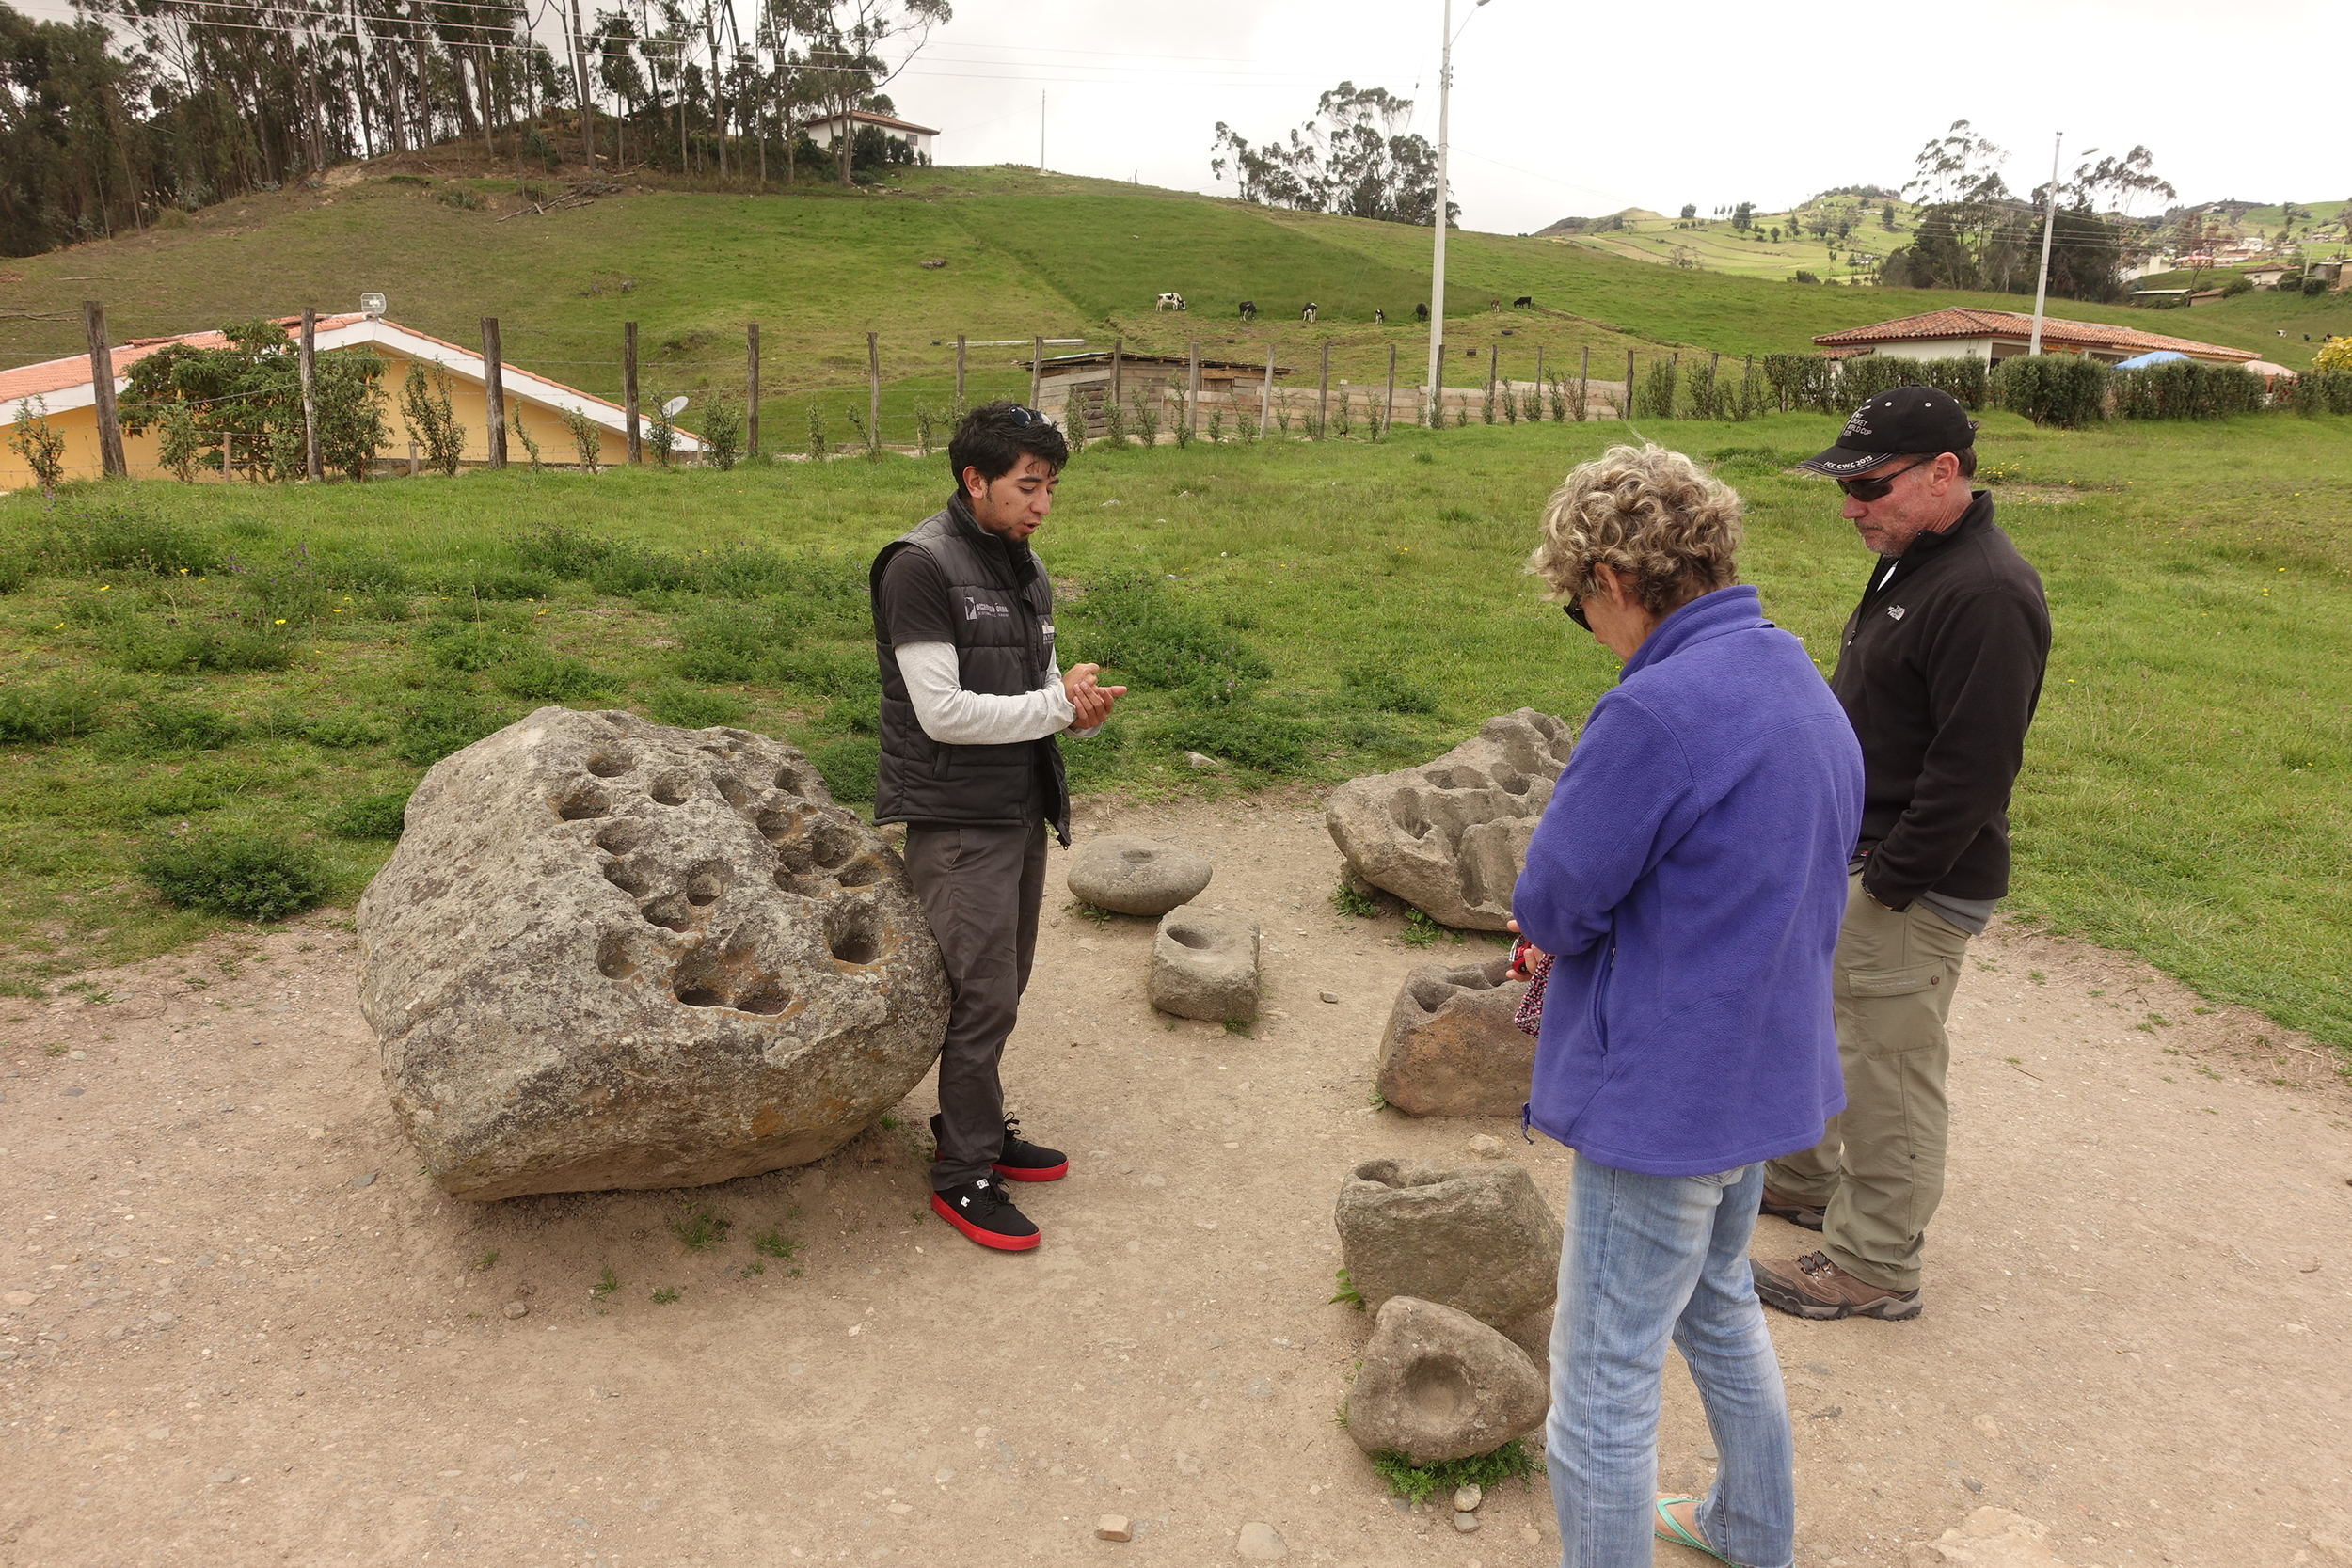 Our guide explaining the significance of these stones.